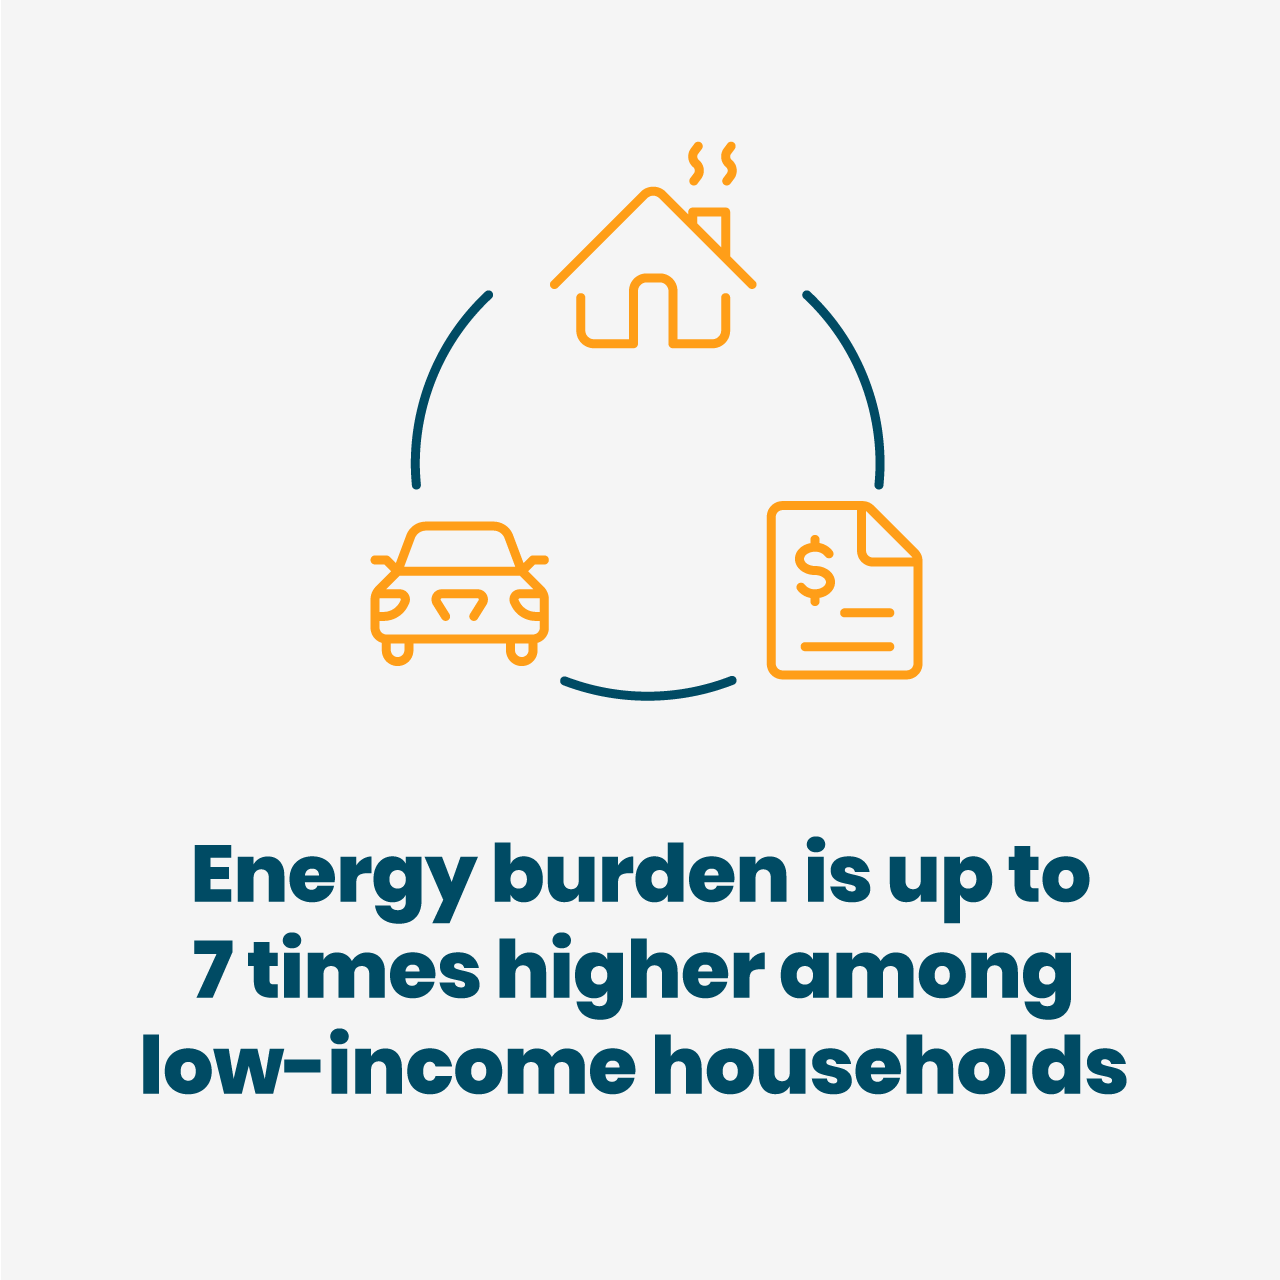 Energy burden is up to 7 times higher among low-income households